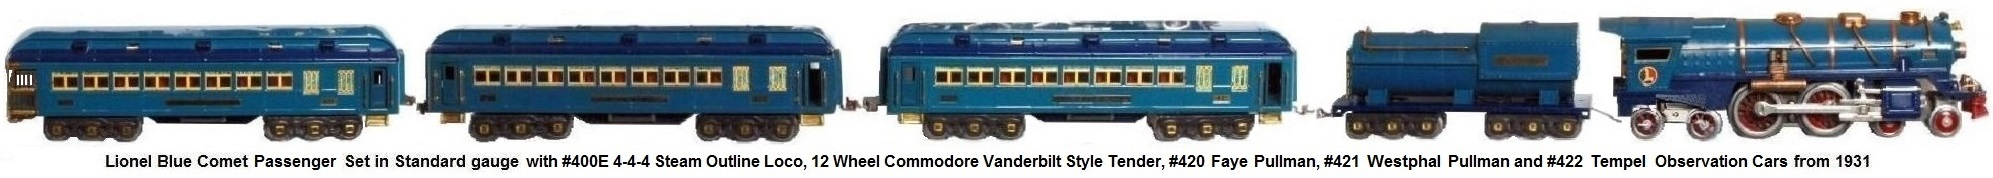 Lionel Standard gauge Blue Comet Set from 1931